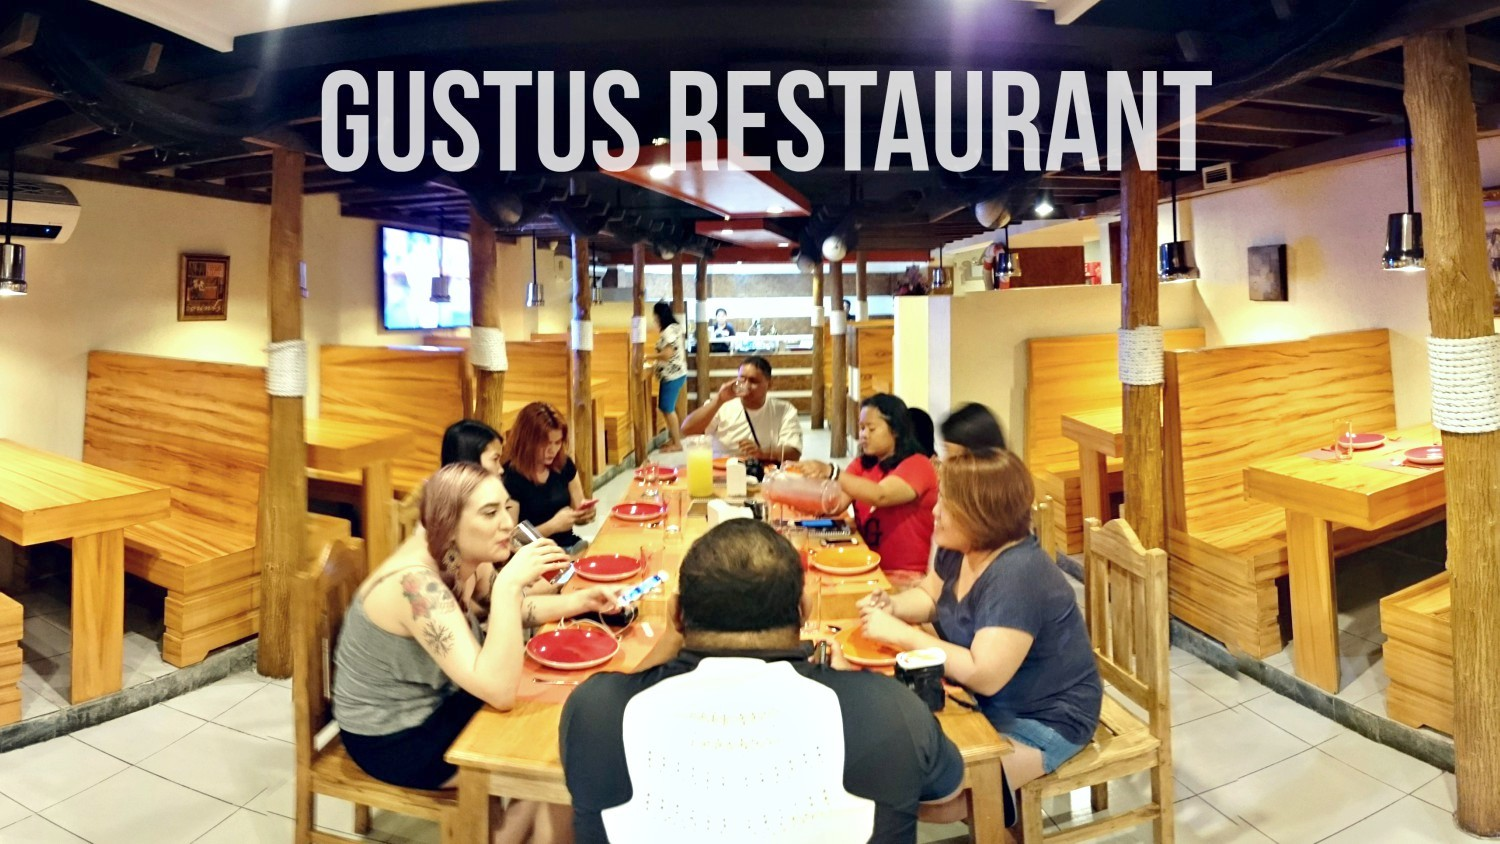 Gustus Restaurant: A Gastronomic Find in Tagbilaran